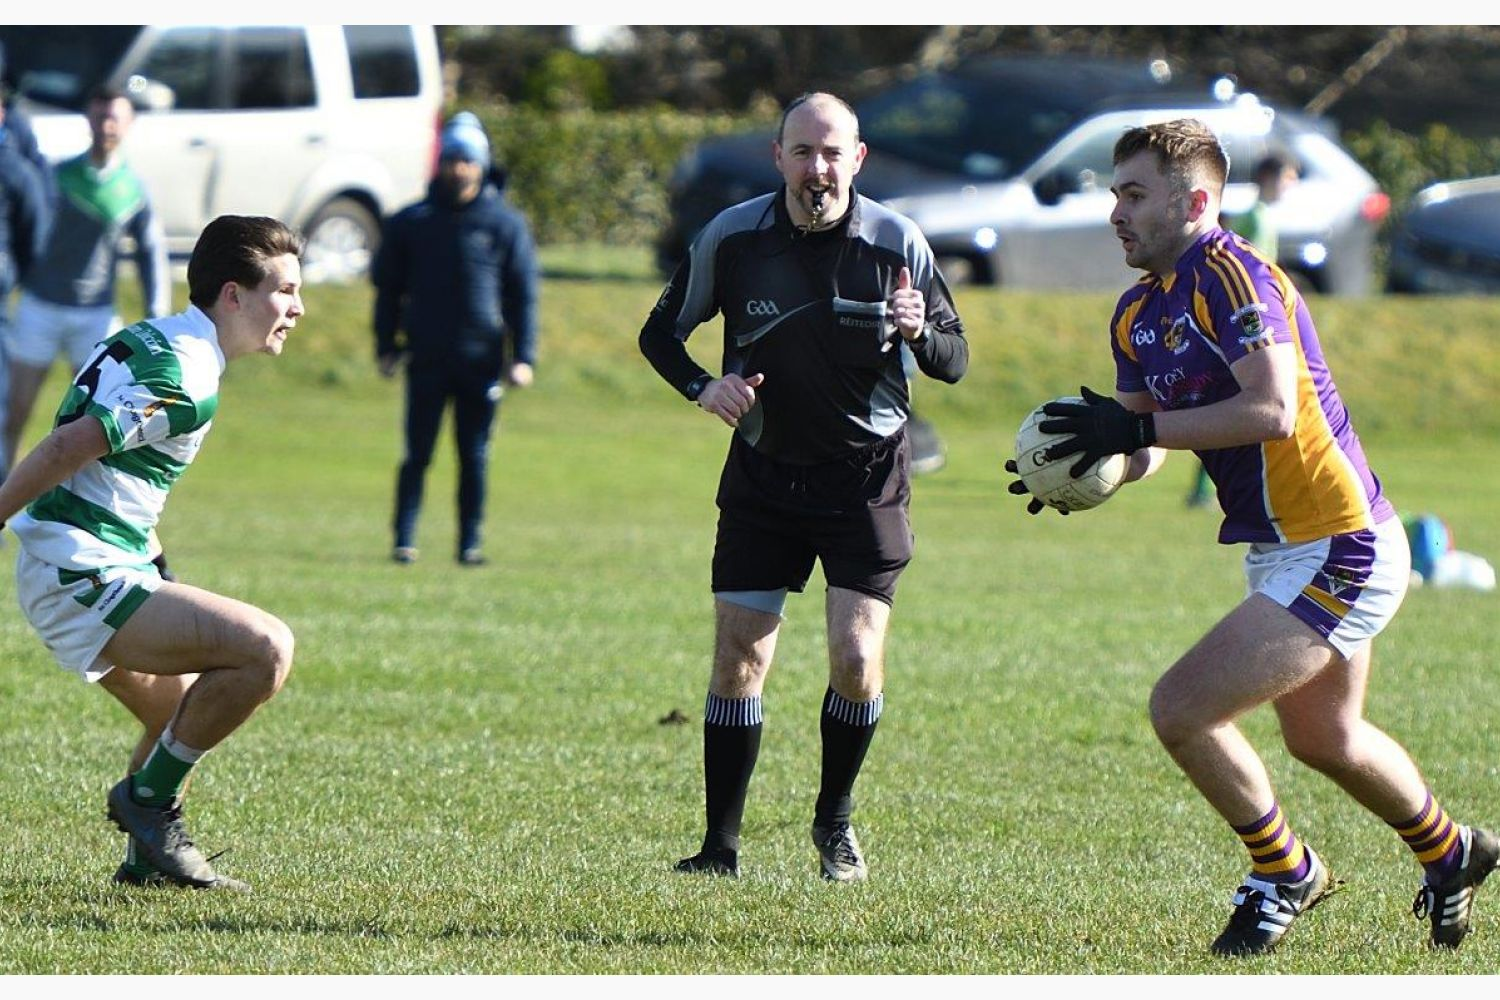 2nd football team lose out to Round Towers in their opening league game